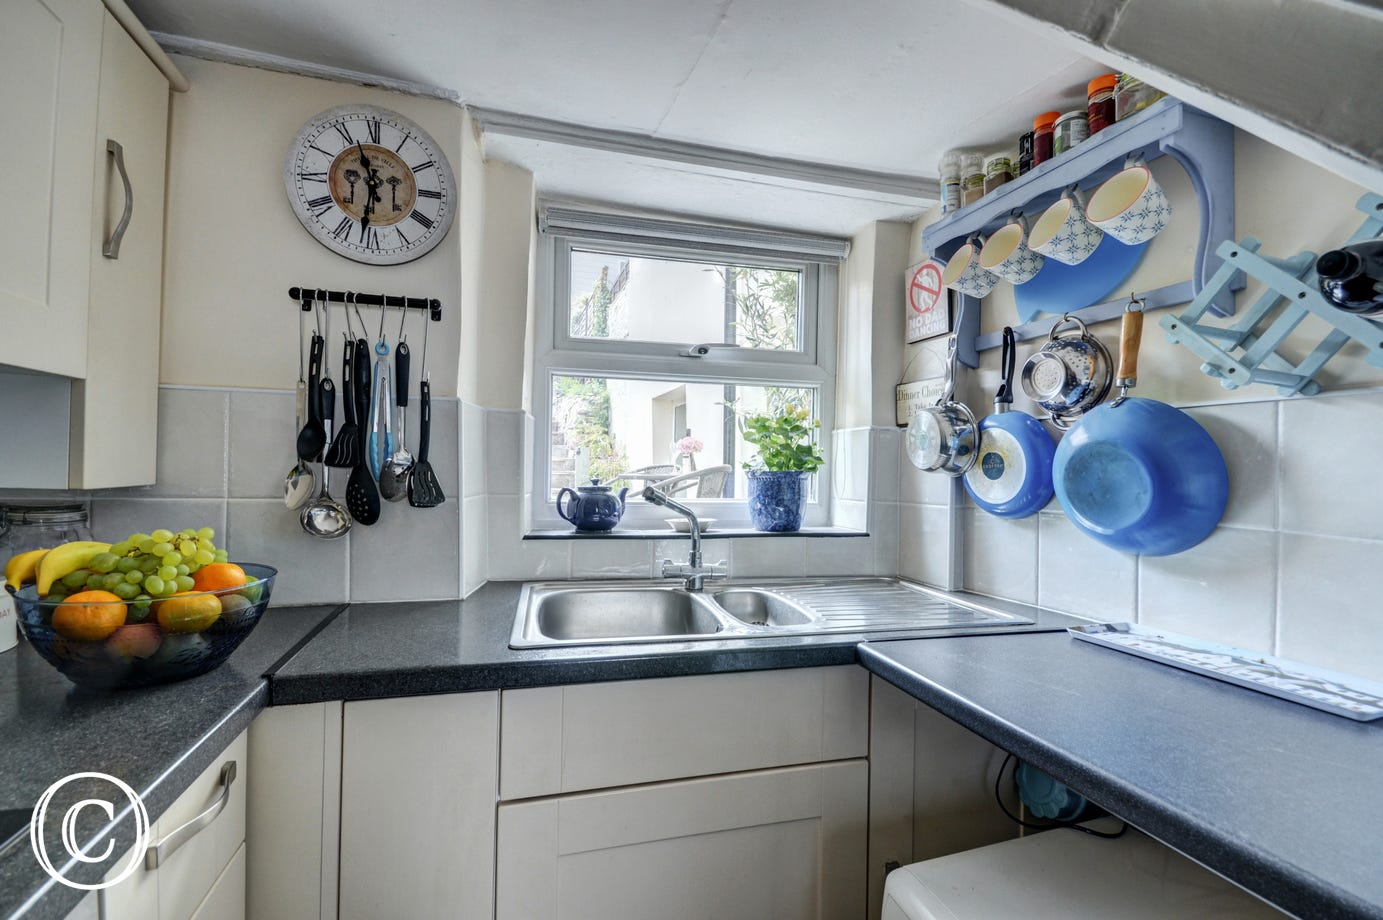 The compact kitchen provides all you will need for dining in